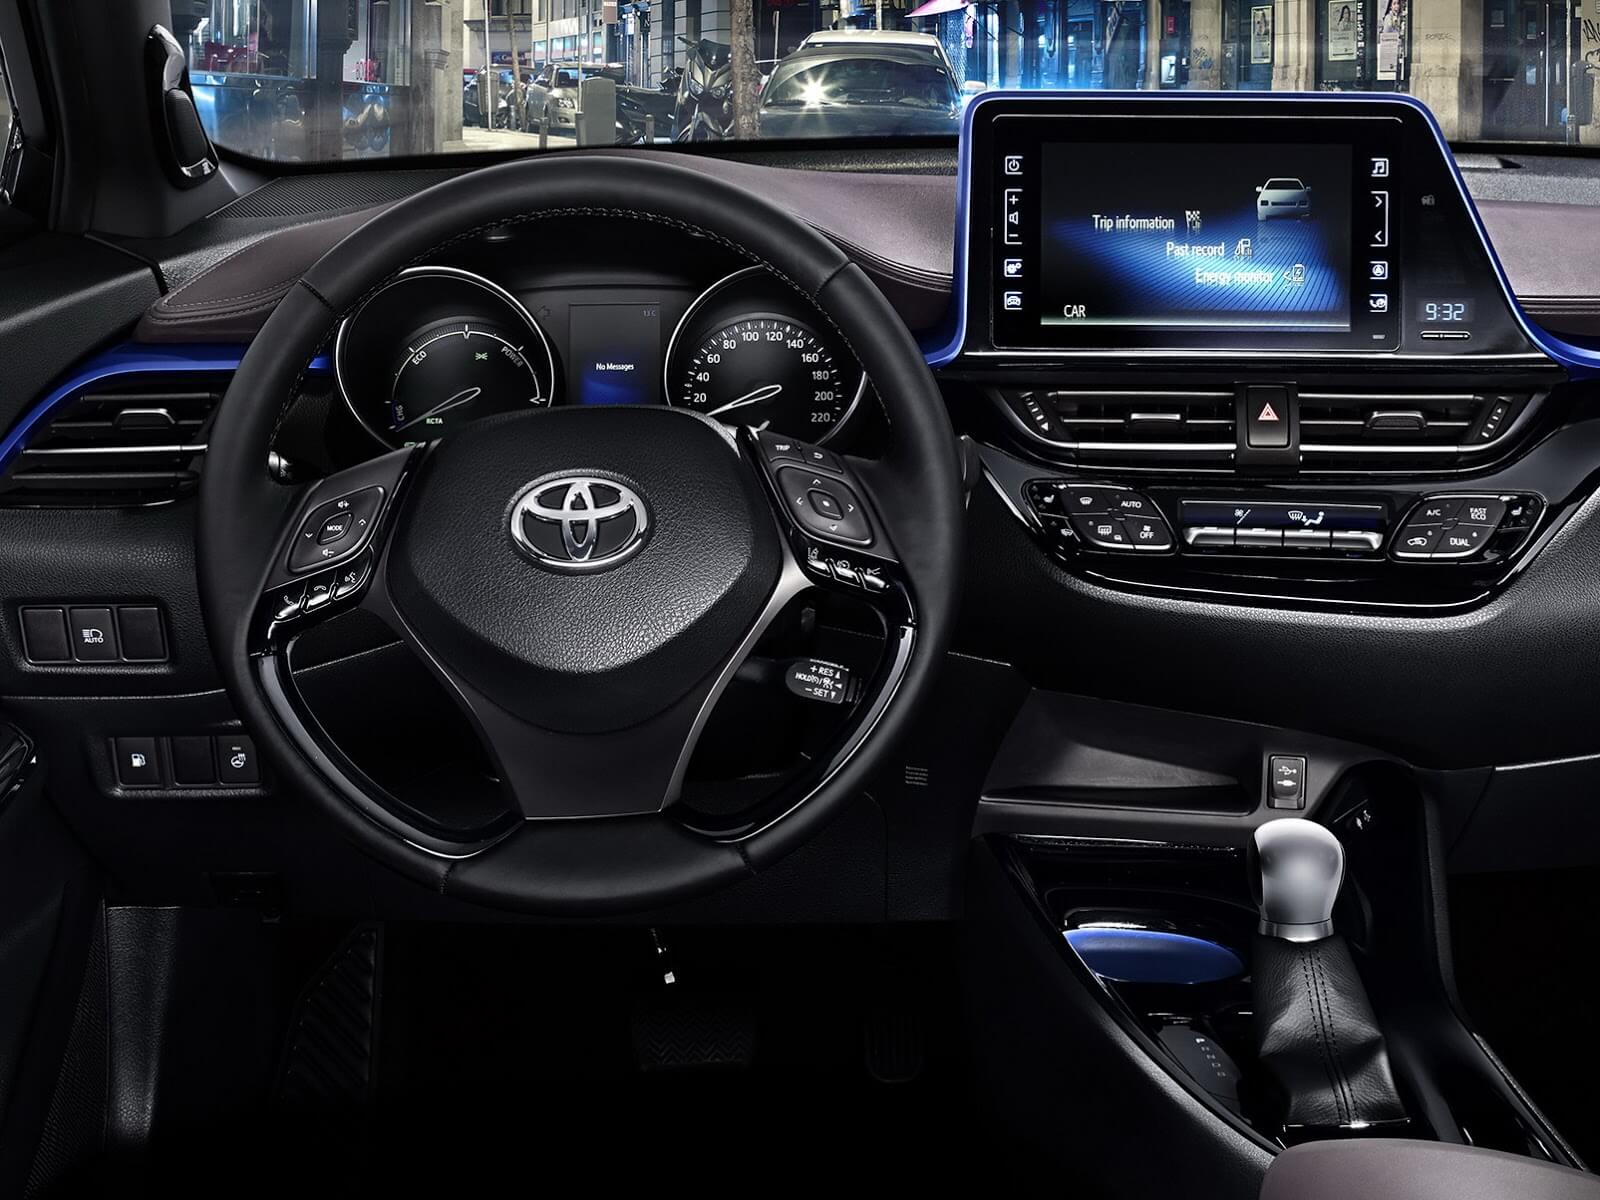 Shop with edmunds for … Blue Chilli Cars: The Brand New Toyota CH-R Crossover